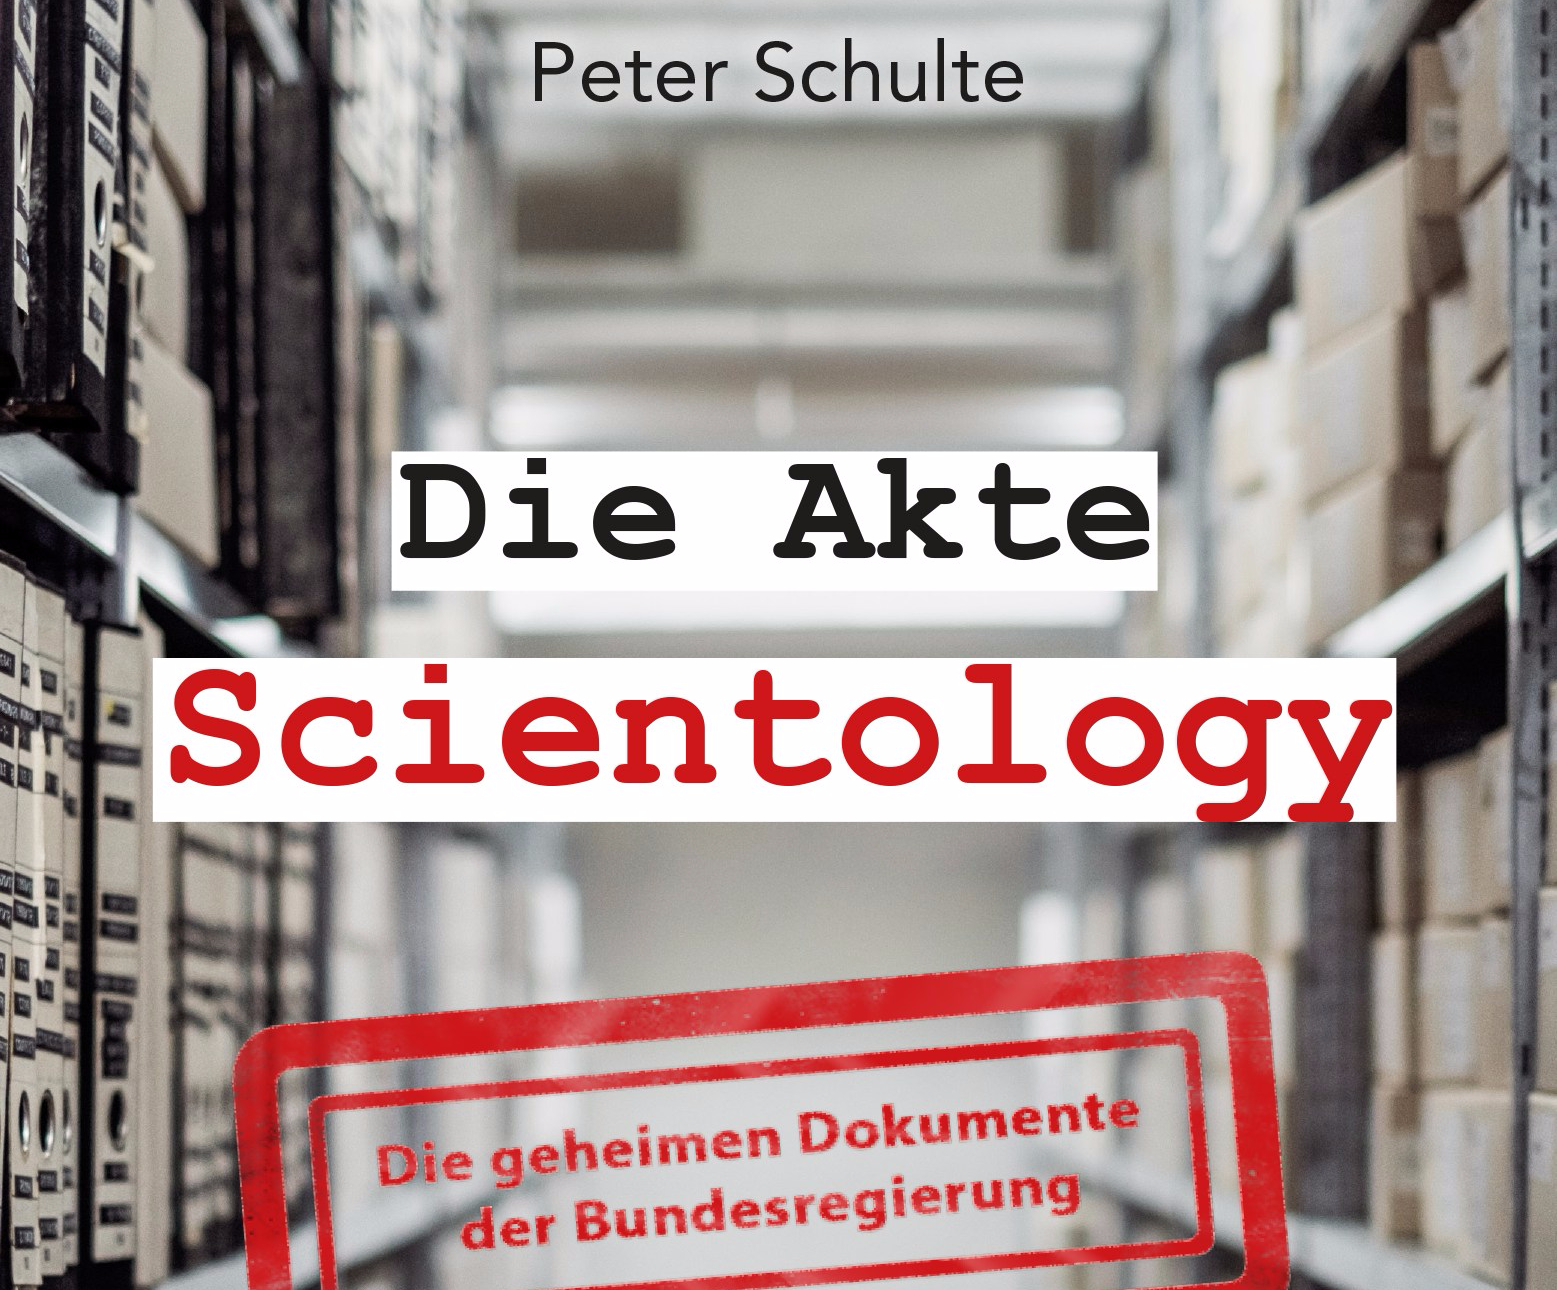 COVER-Die_Akte_Scientology_FRONT_ONLY